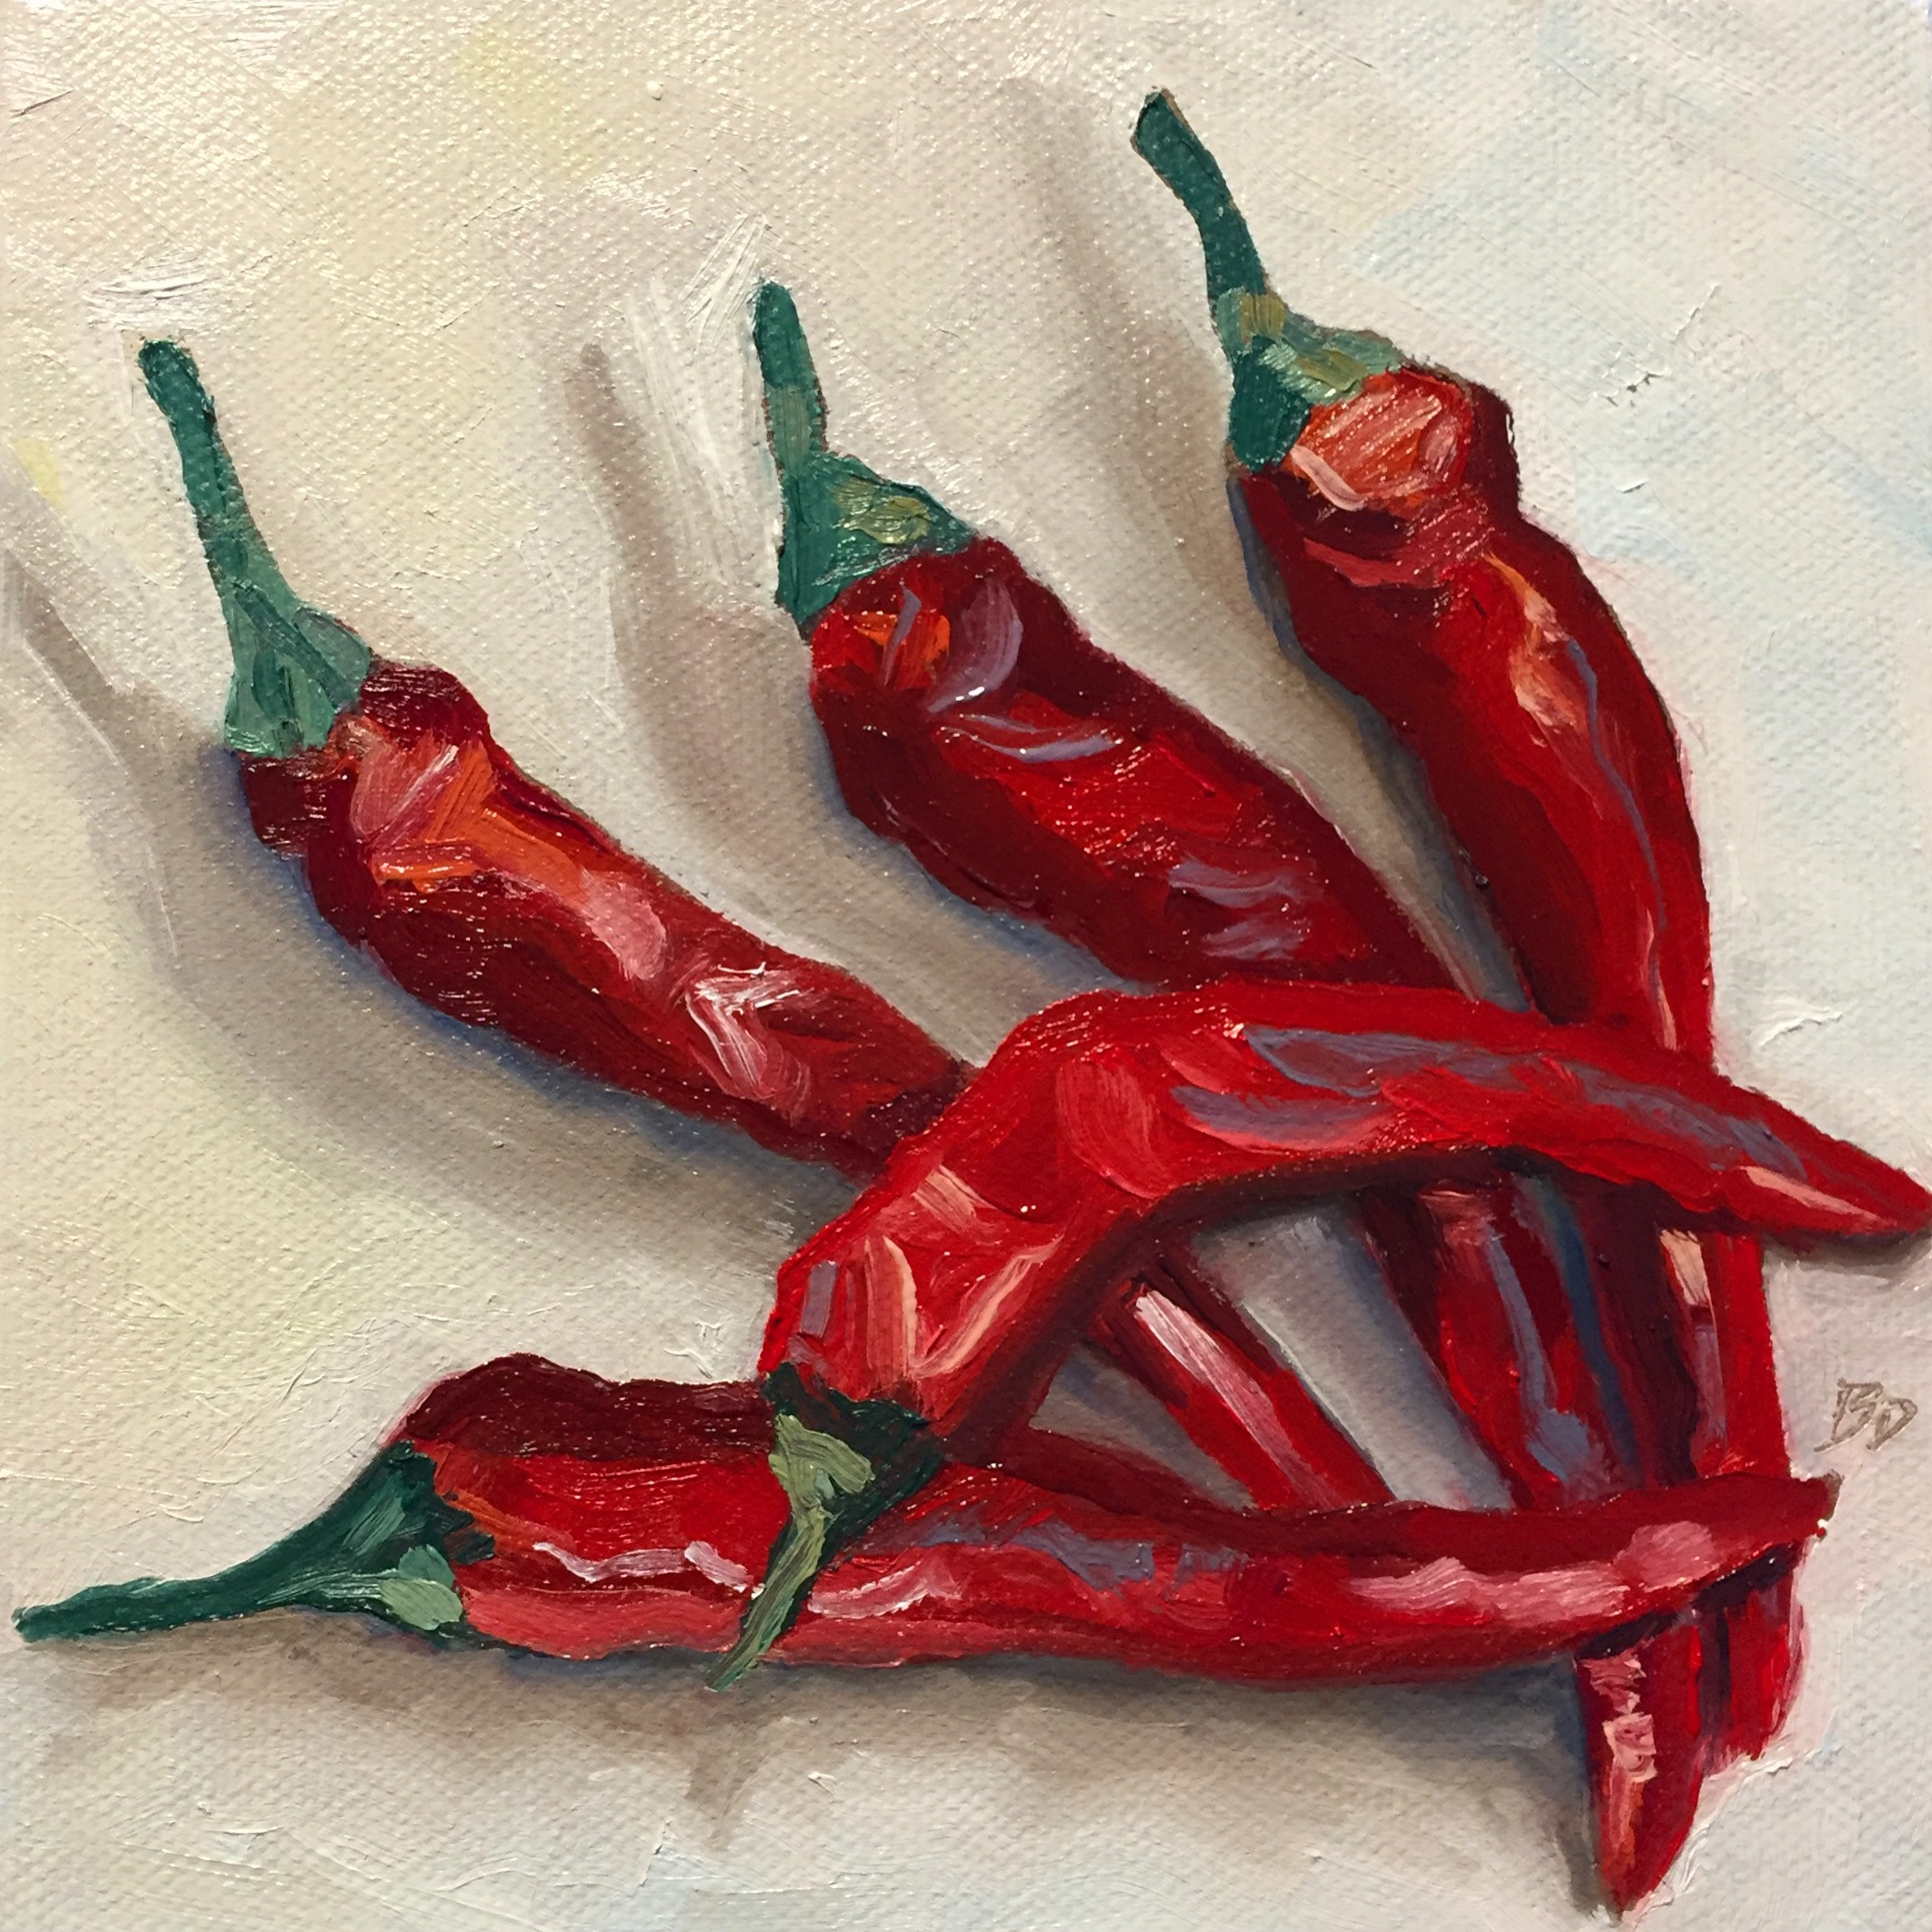 Chili Peppers, 6x6, oil on canvas